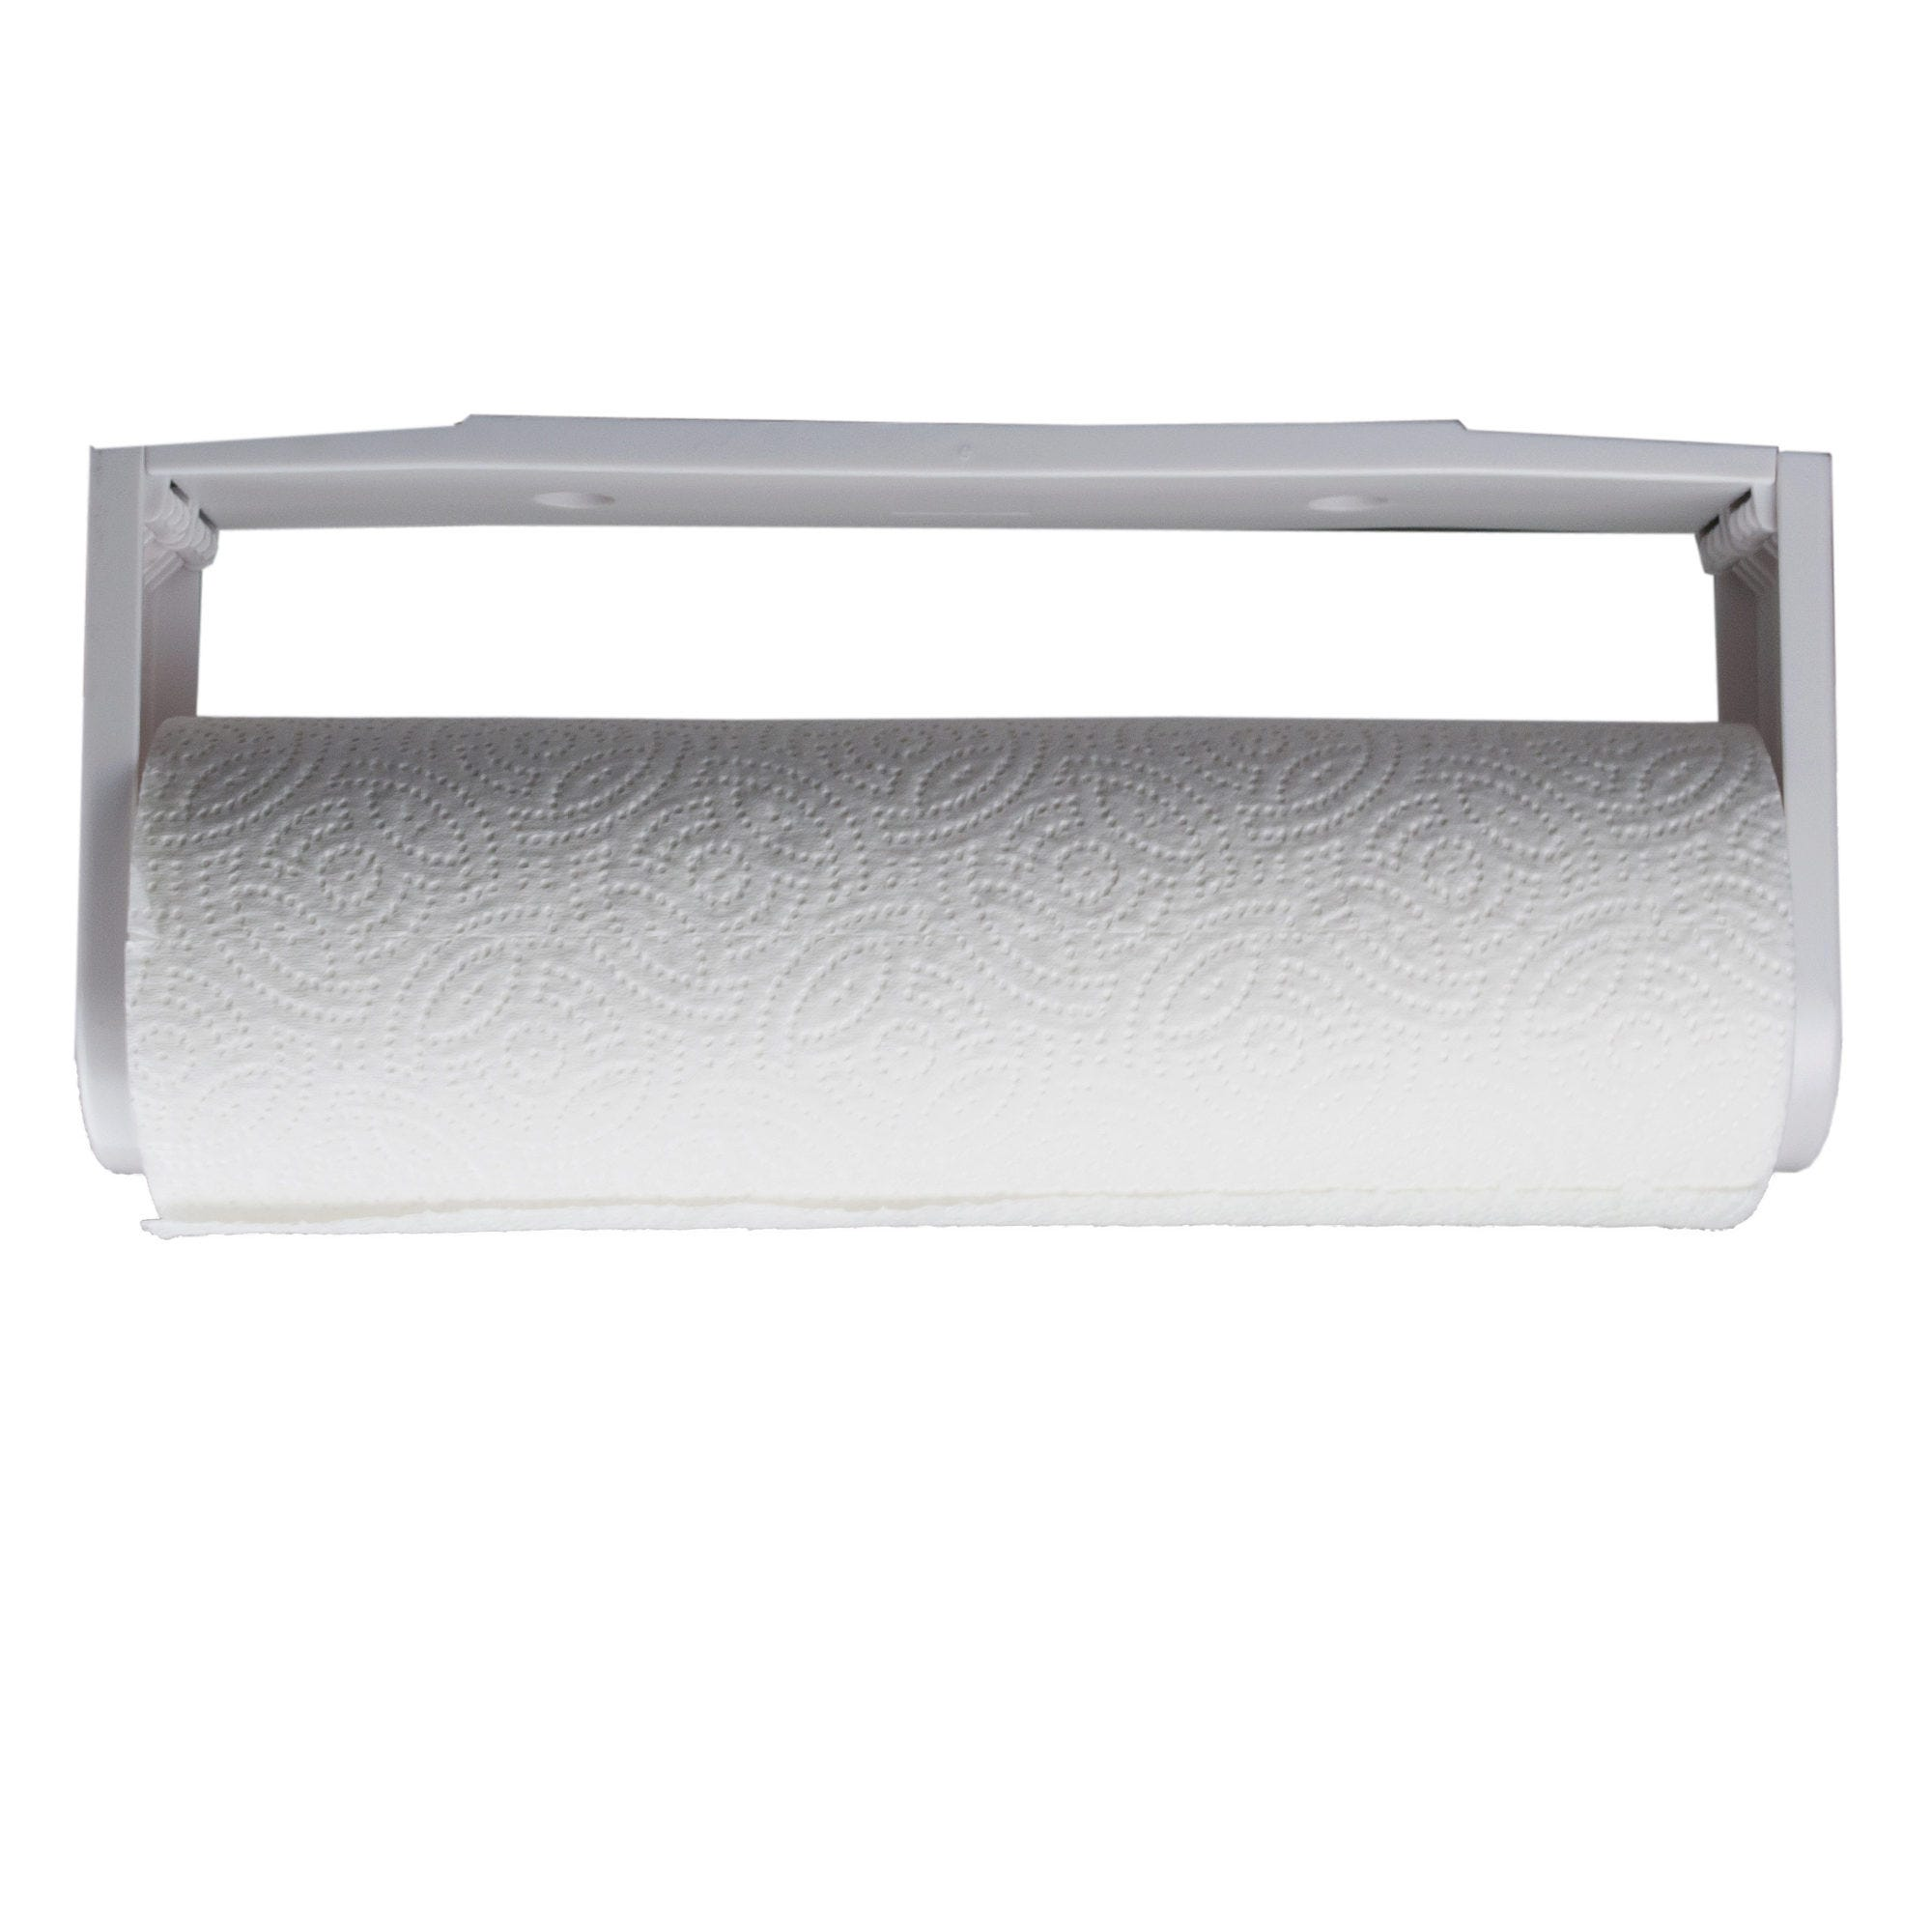 Wall or Cabinet Mount Paper TOWEL Holder- Qty 24